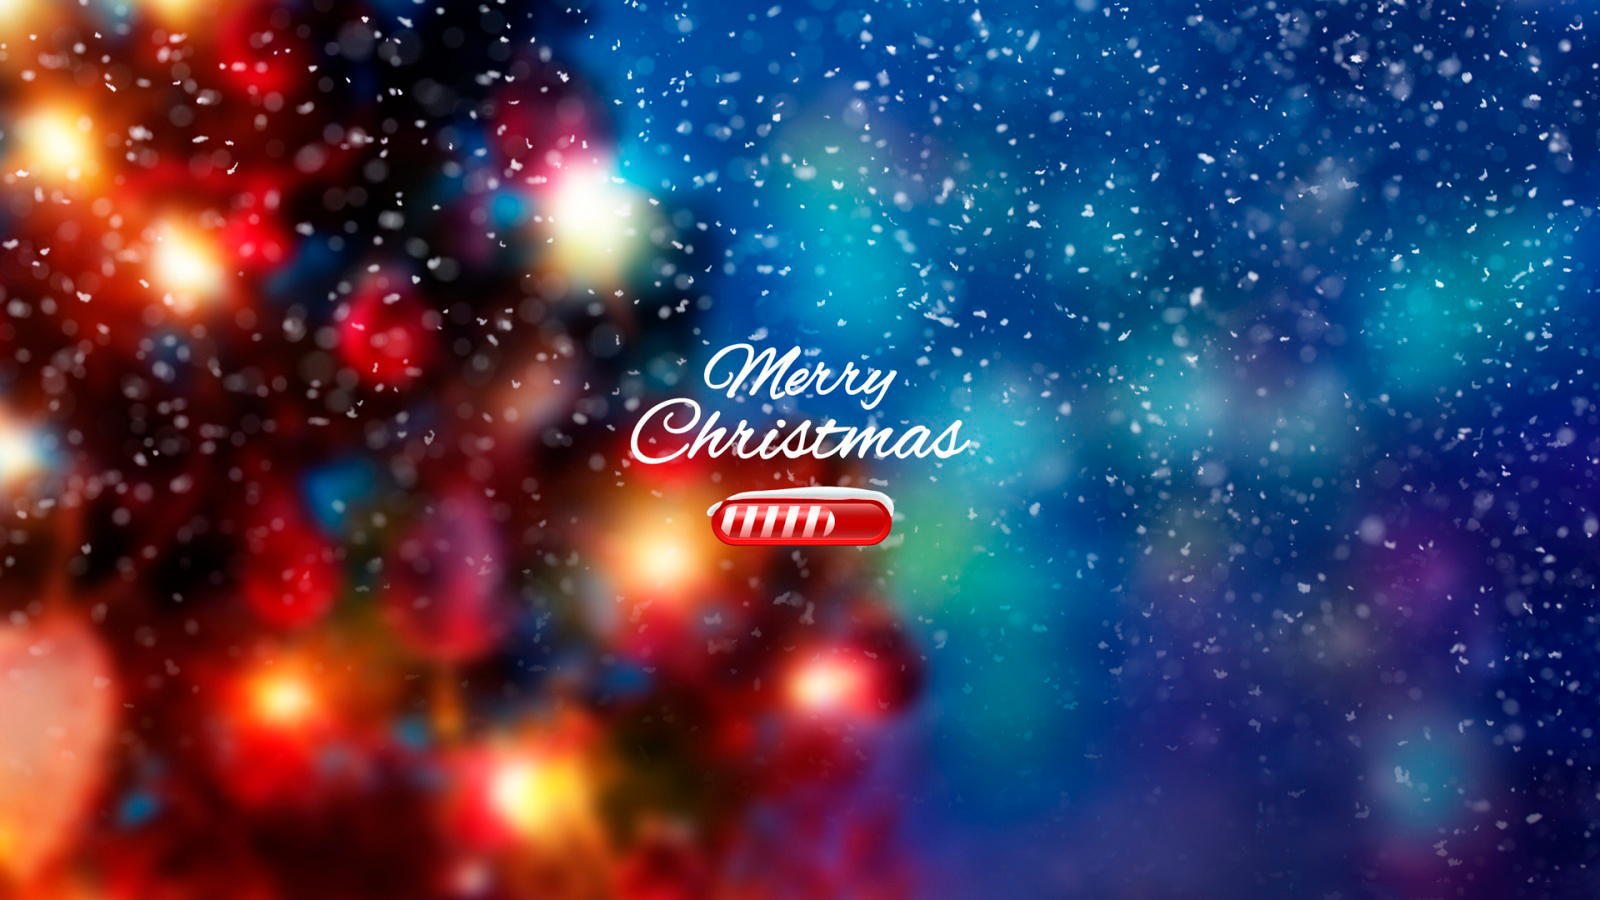 Merry christmas wallpaper by mileniart on deviantart merry christmas wallpaper by mileniart merry christmas wallpaper by mileniart voltagebd Image collections